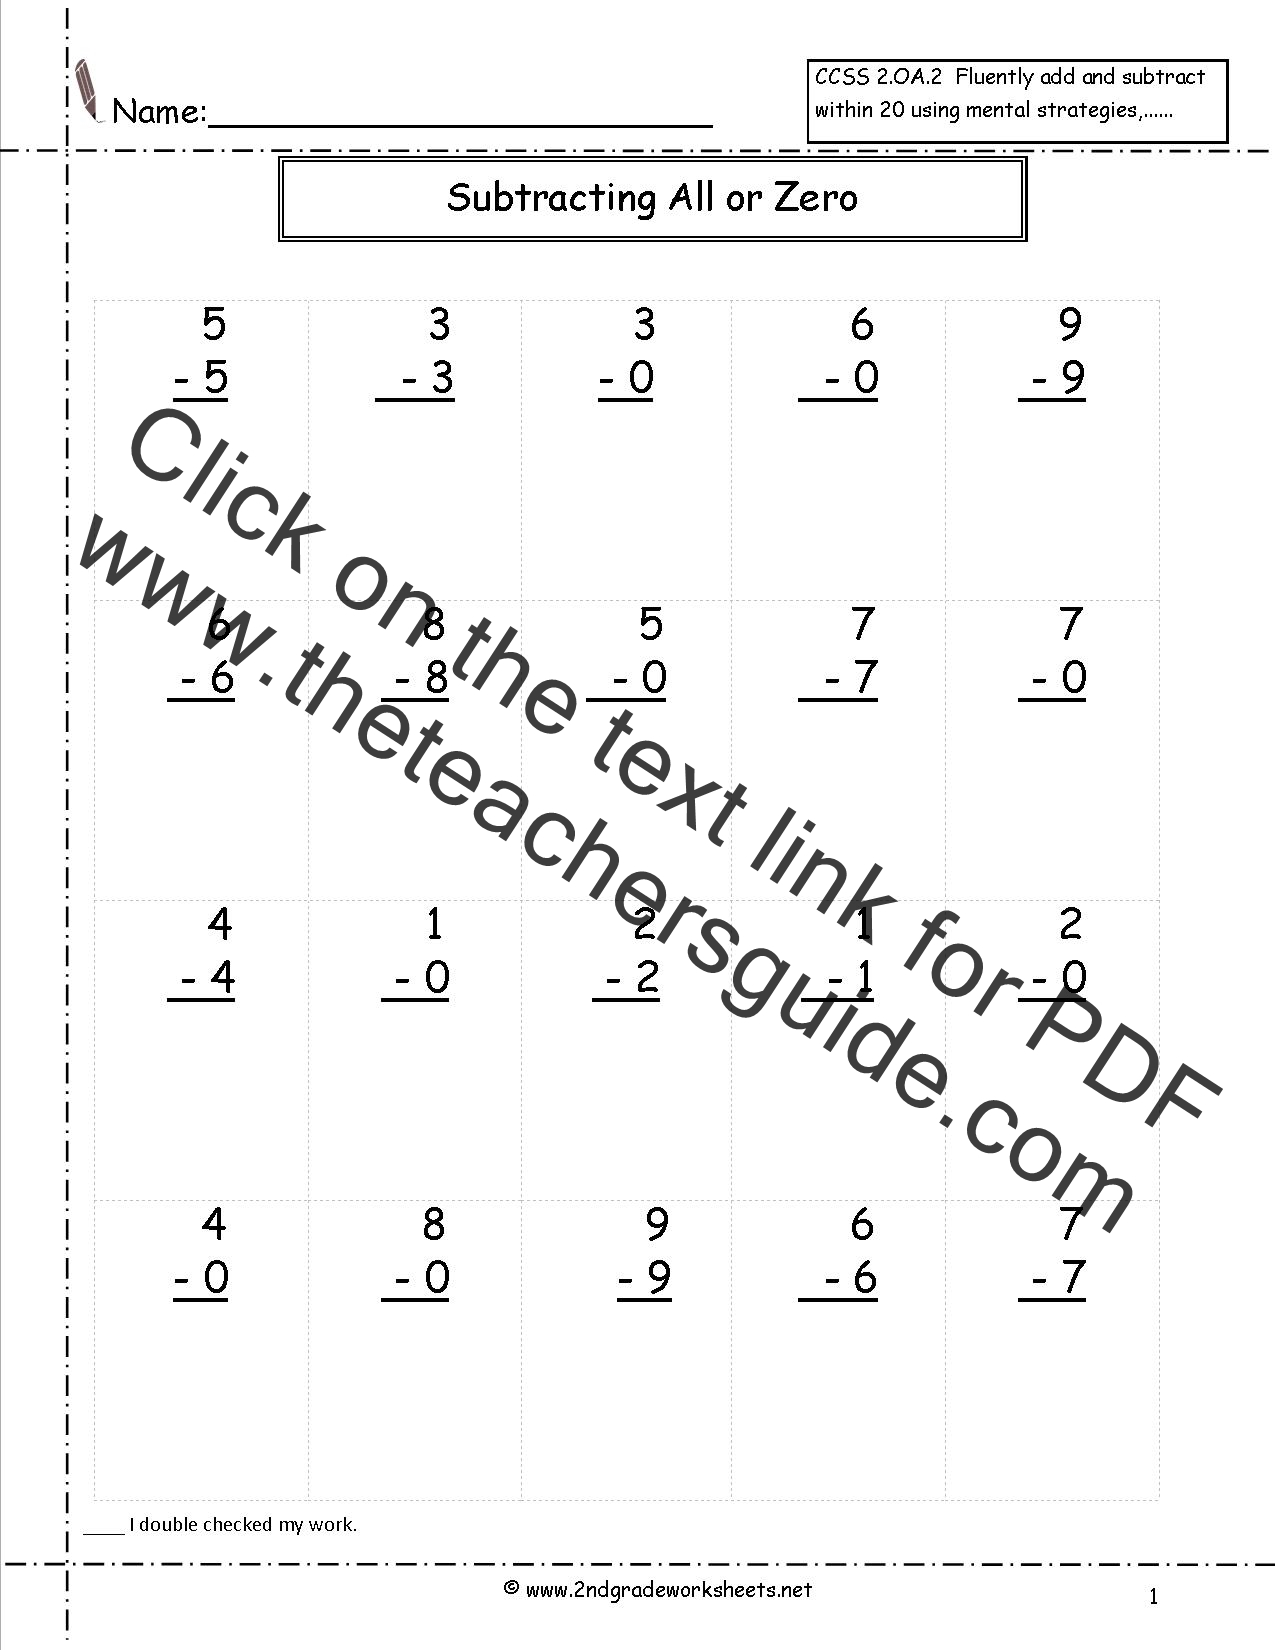 single digit subtraction fluency worksheets subtracting all or zero worksheet